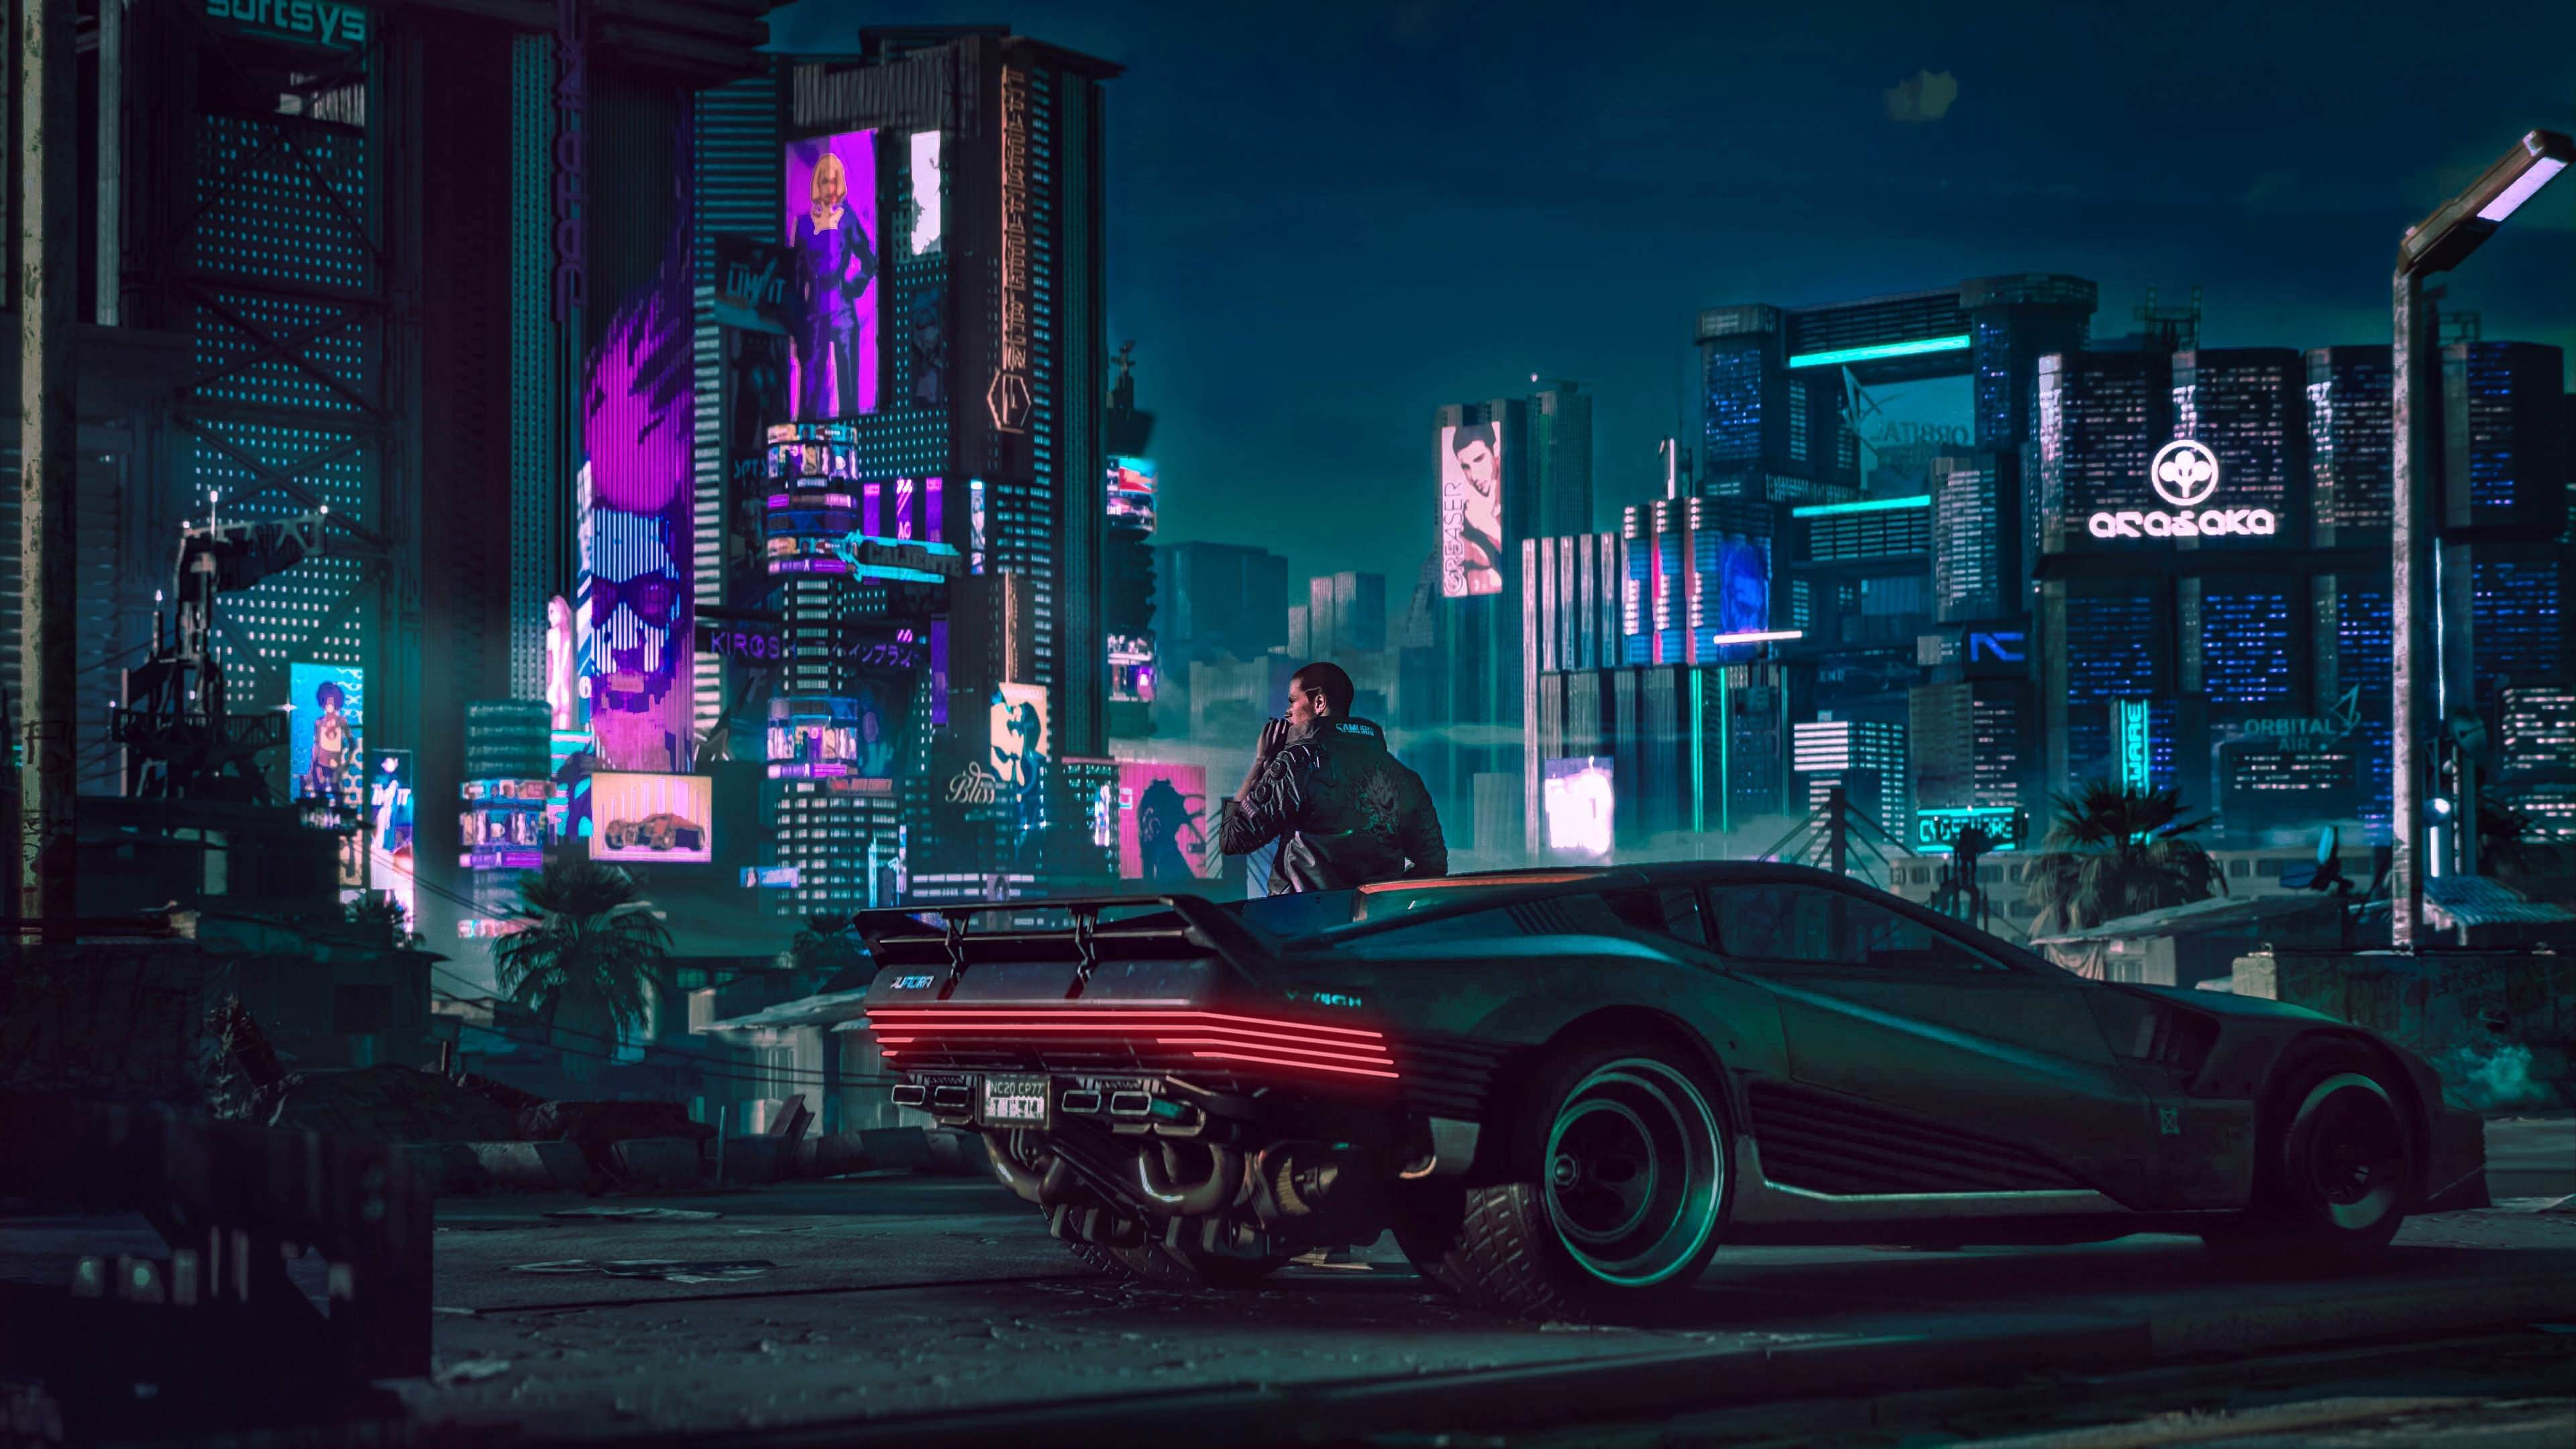 Retro Girl Wallpaper Hd Cyberpunk Car 4k Wallpaper